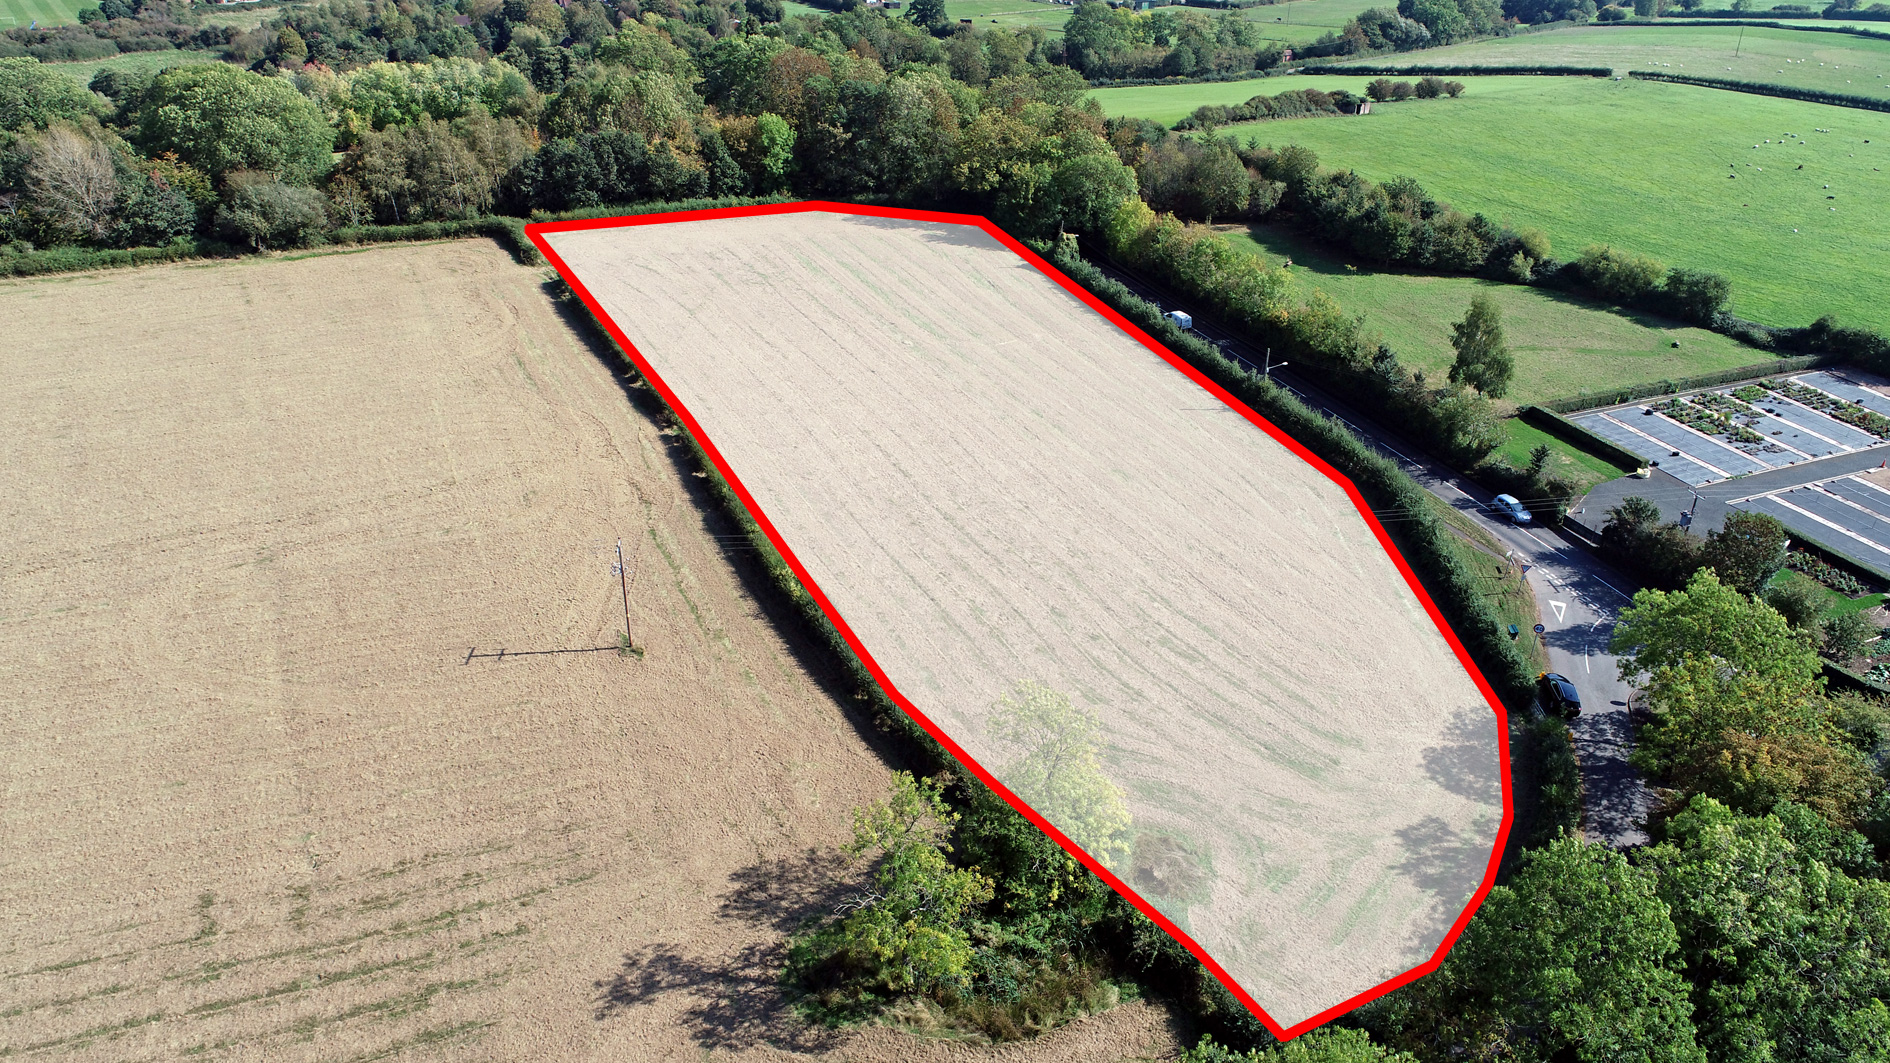 Land for sale in Feckenham aerial view